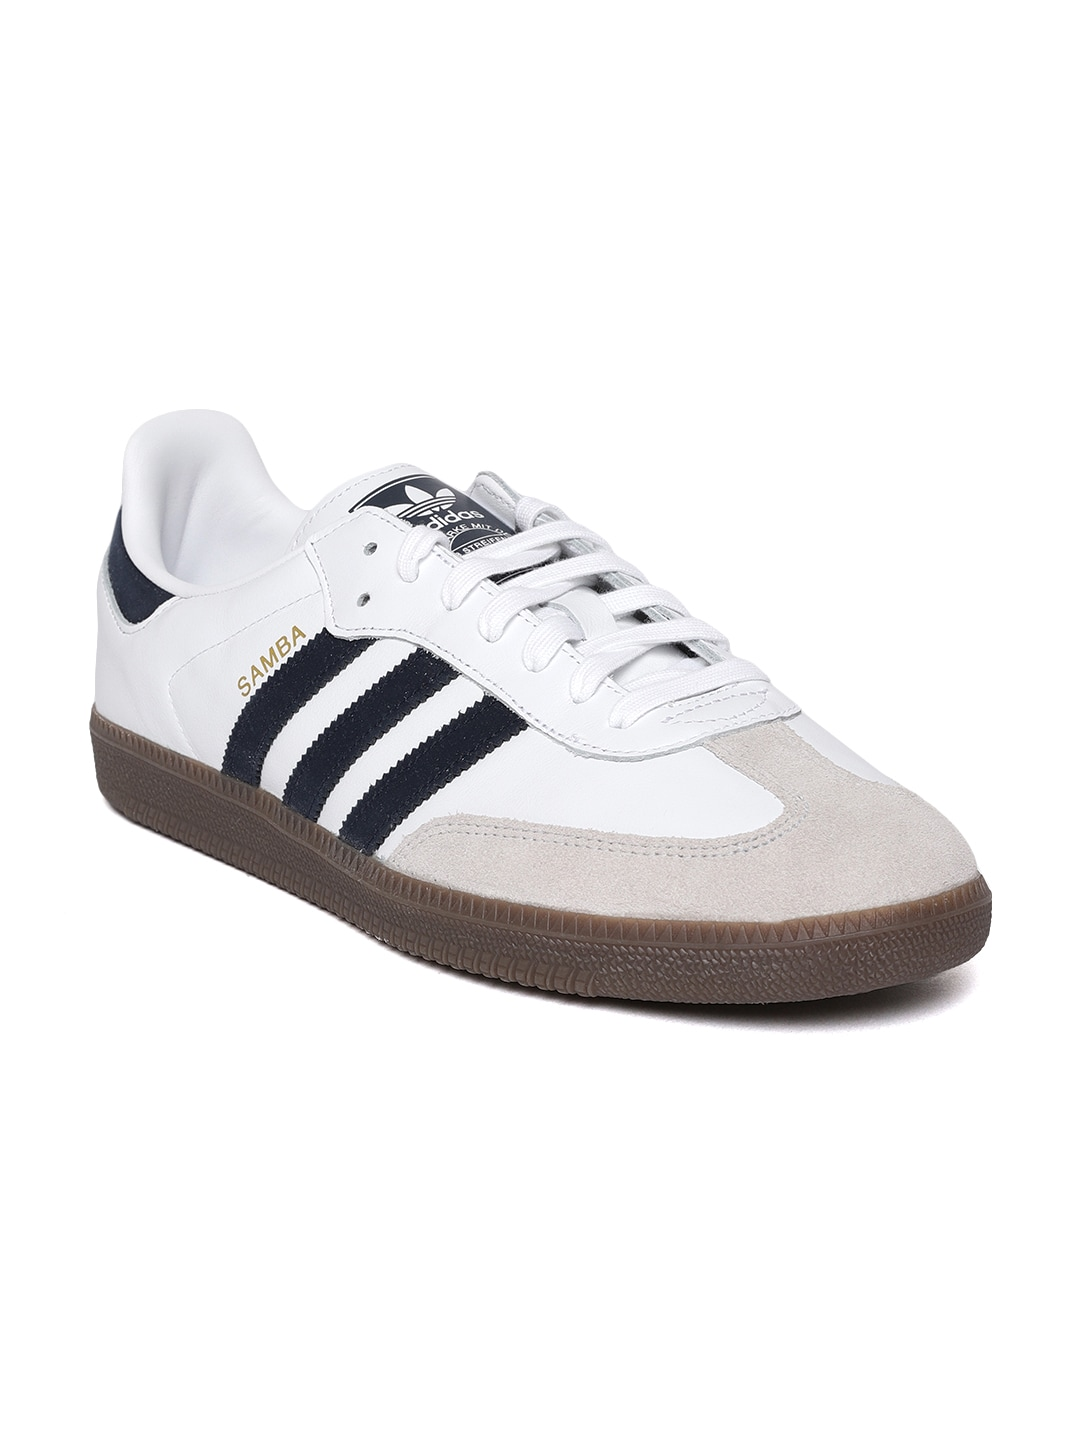 b5dd33e60 Adidas Shoes - Buy Adidas Shoes for Men   Women Online - Myntra